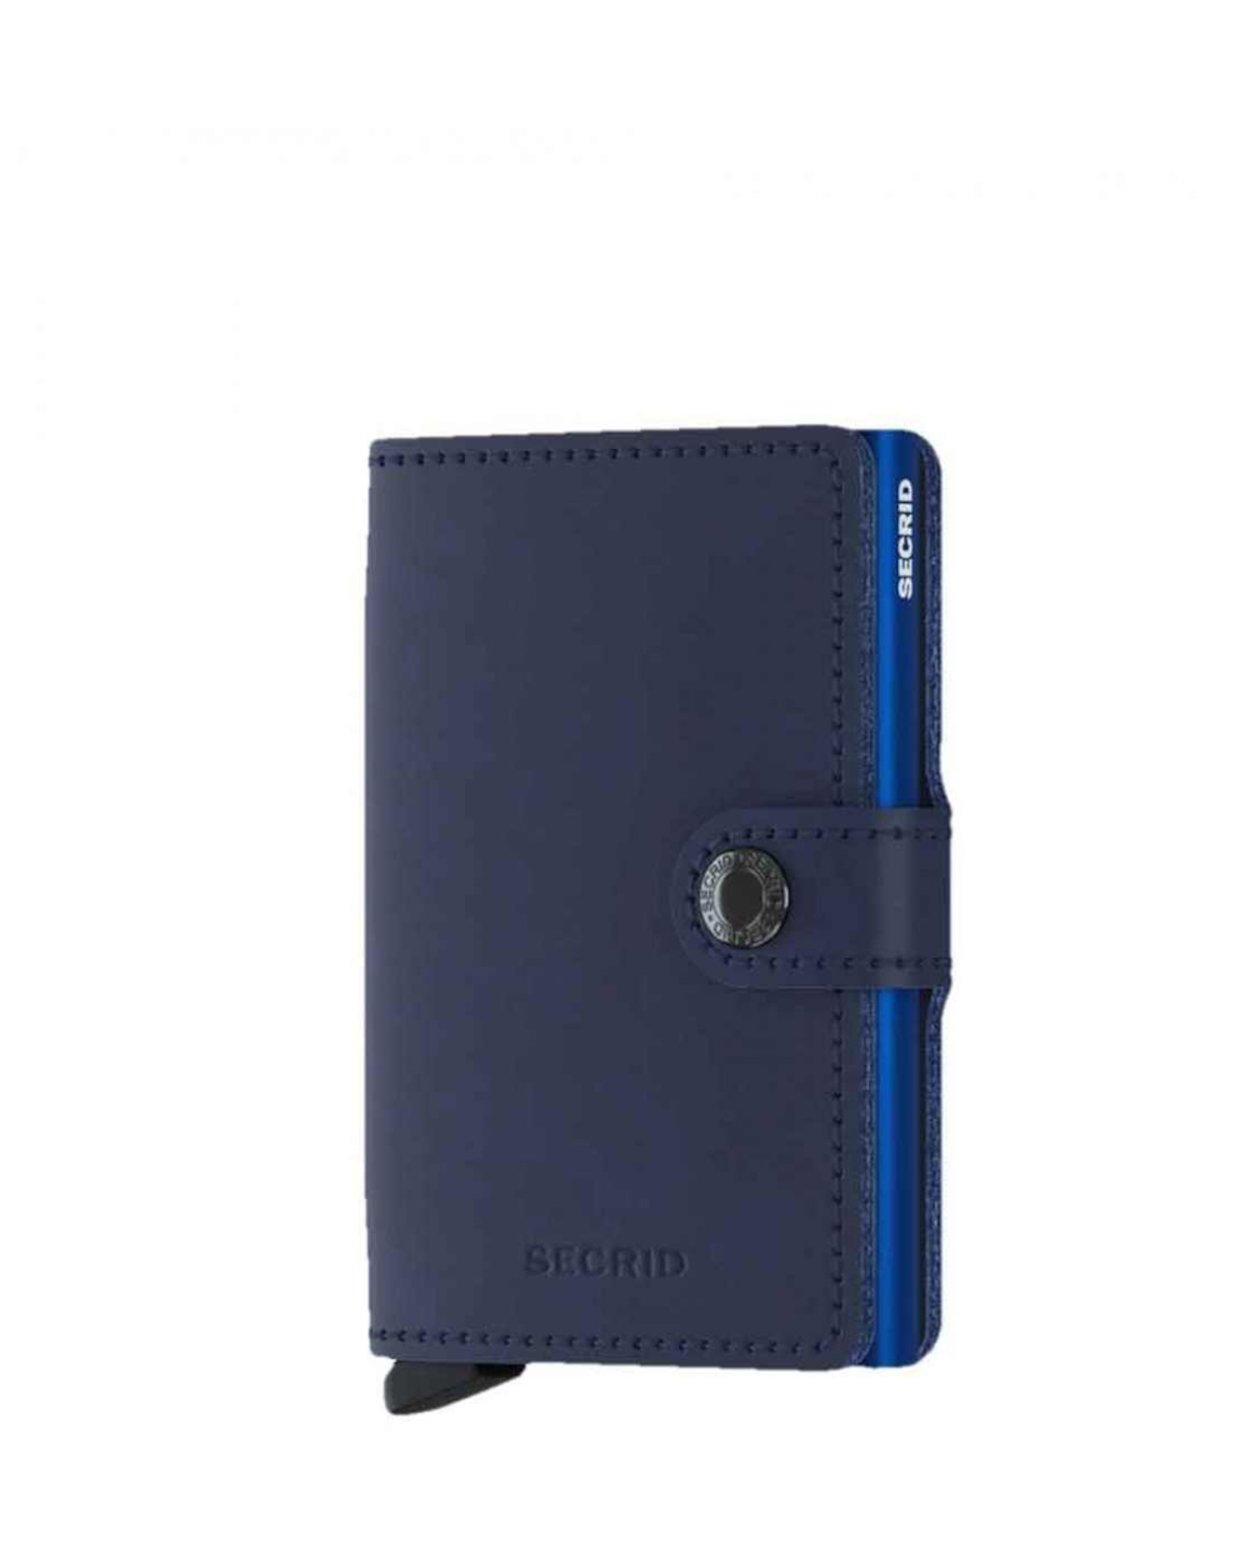 Secrid Wallet and Card Protector in Navy